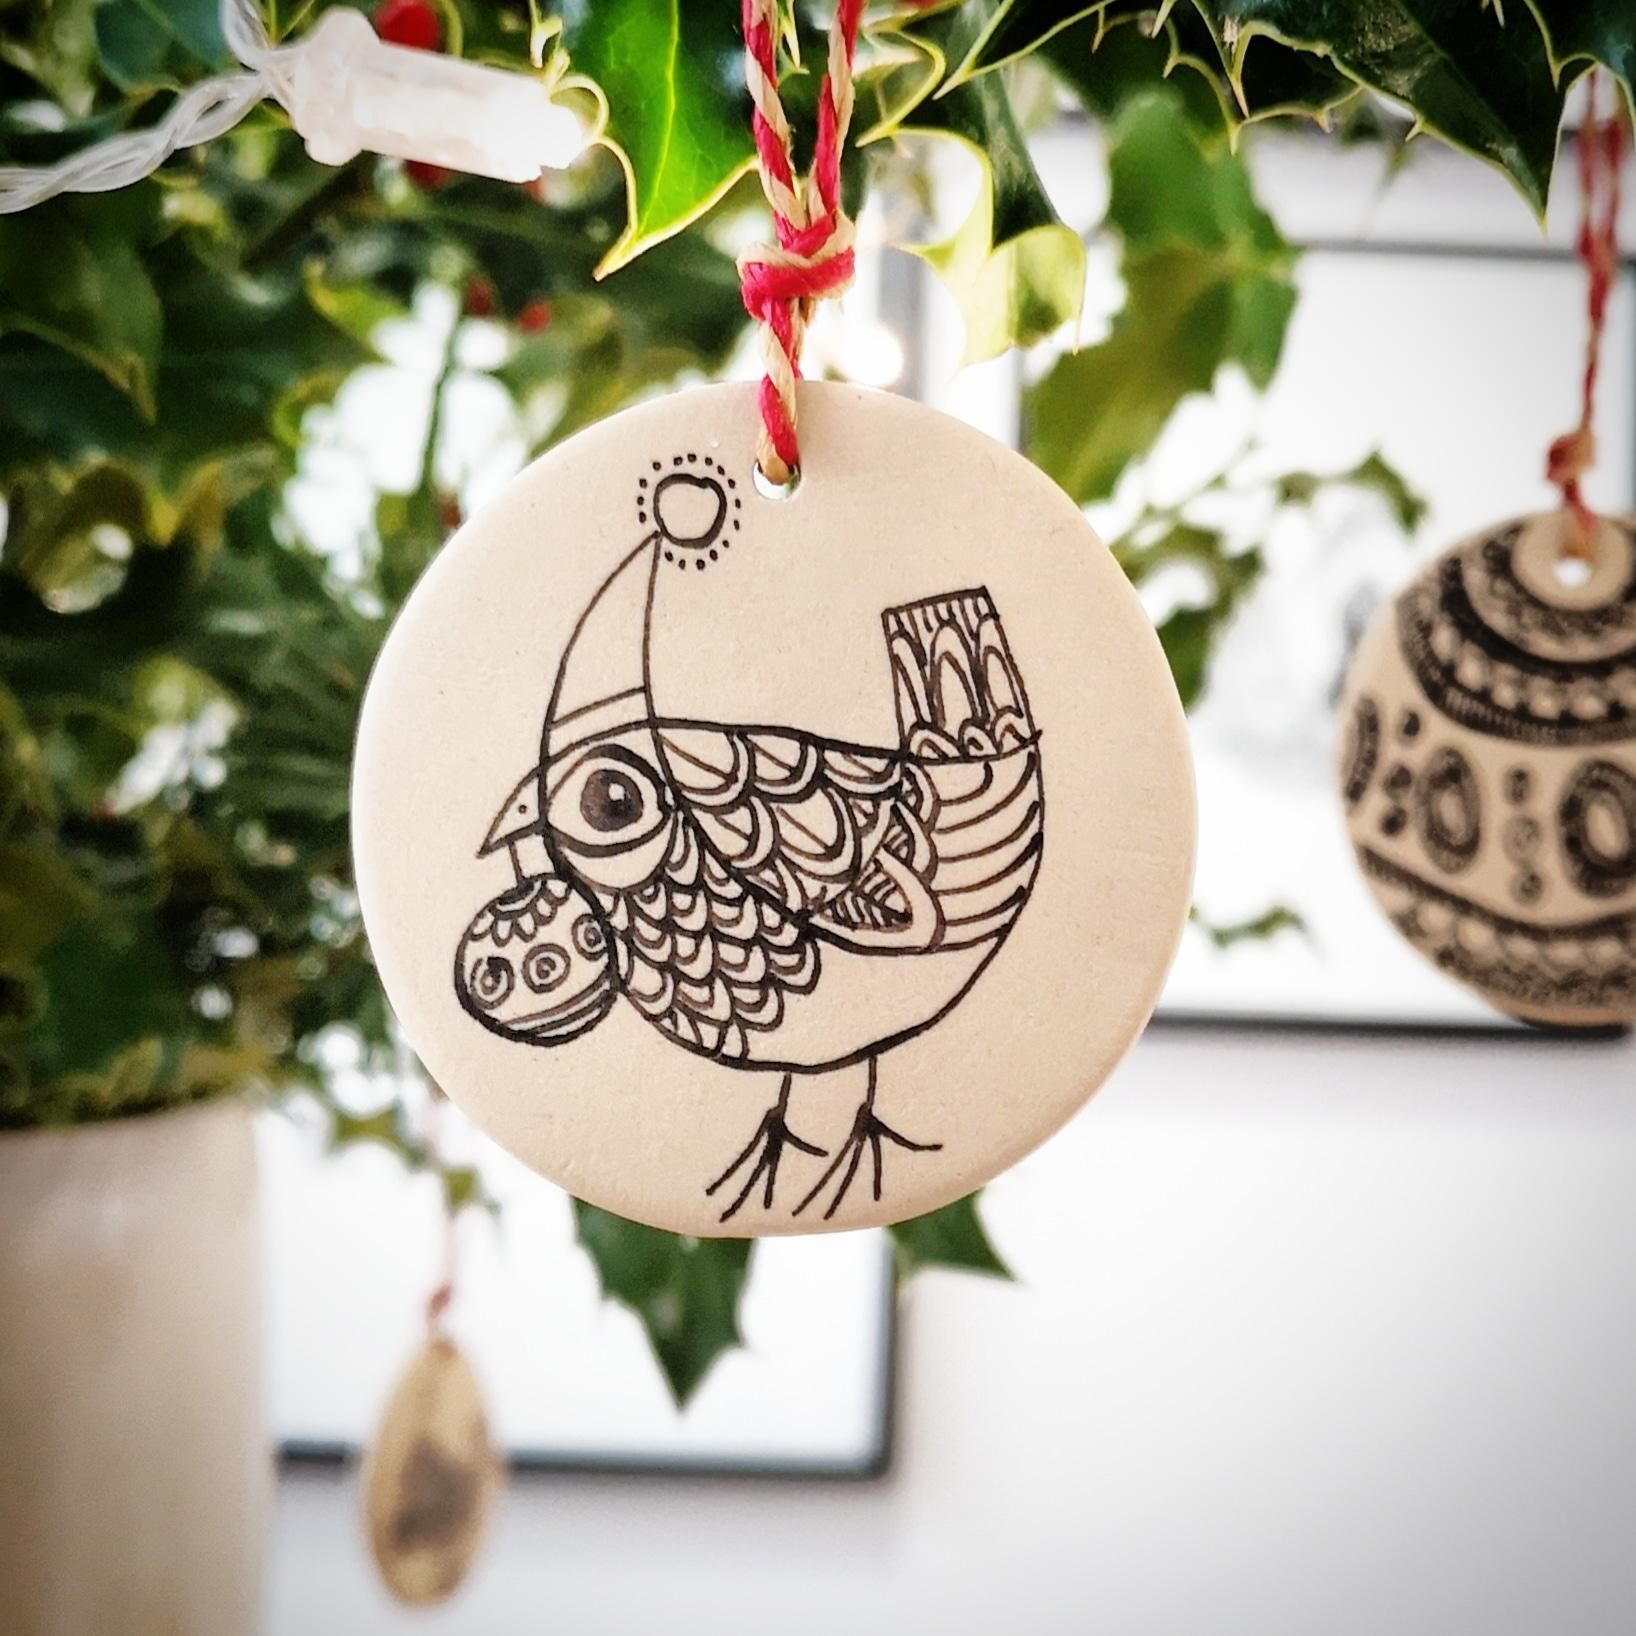 Stoneware ornaments hand-decorated be me. Fun to make.